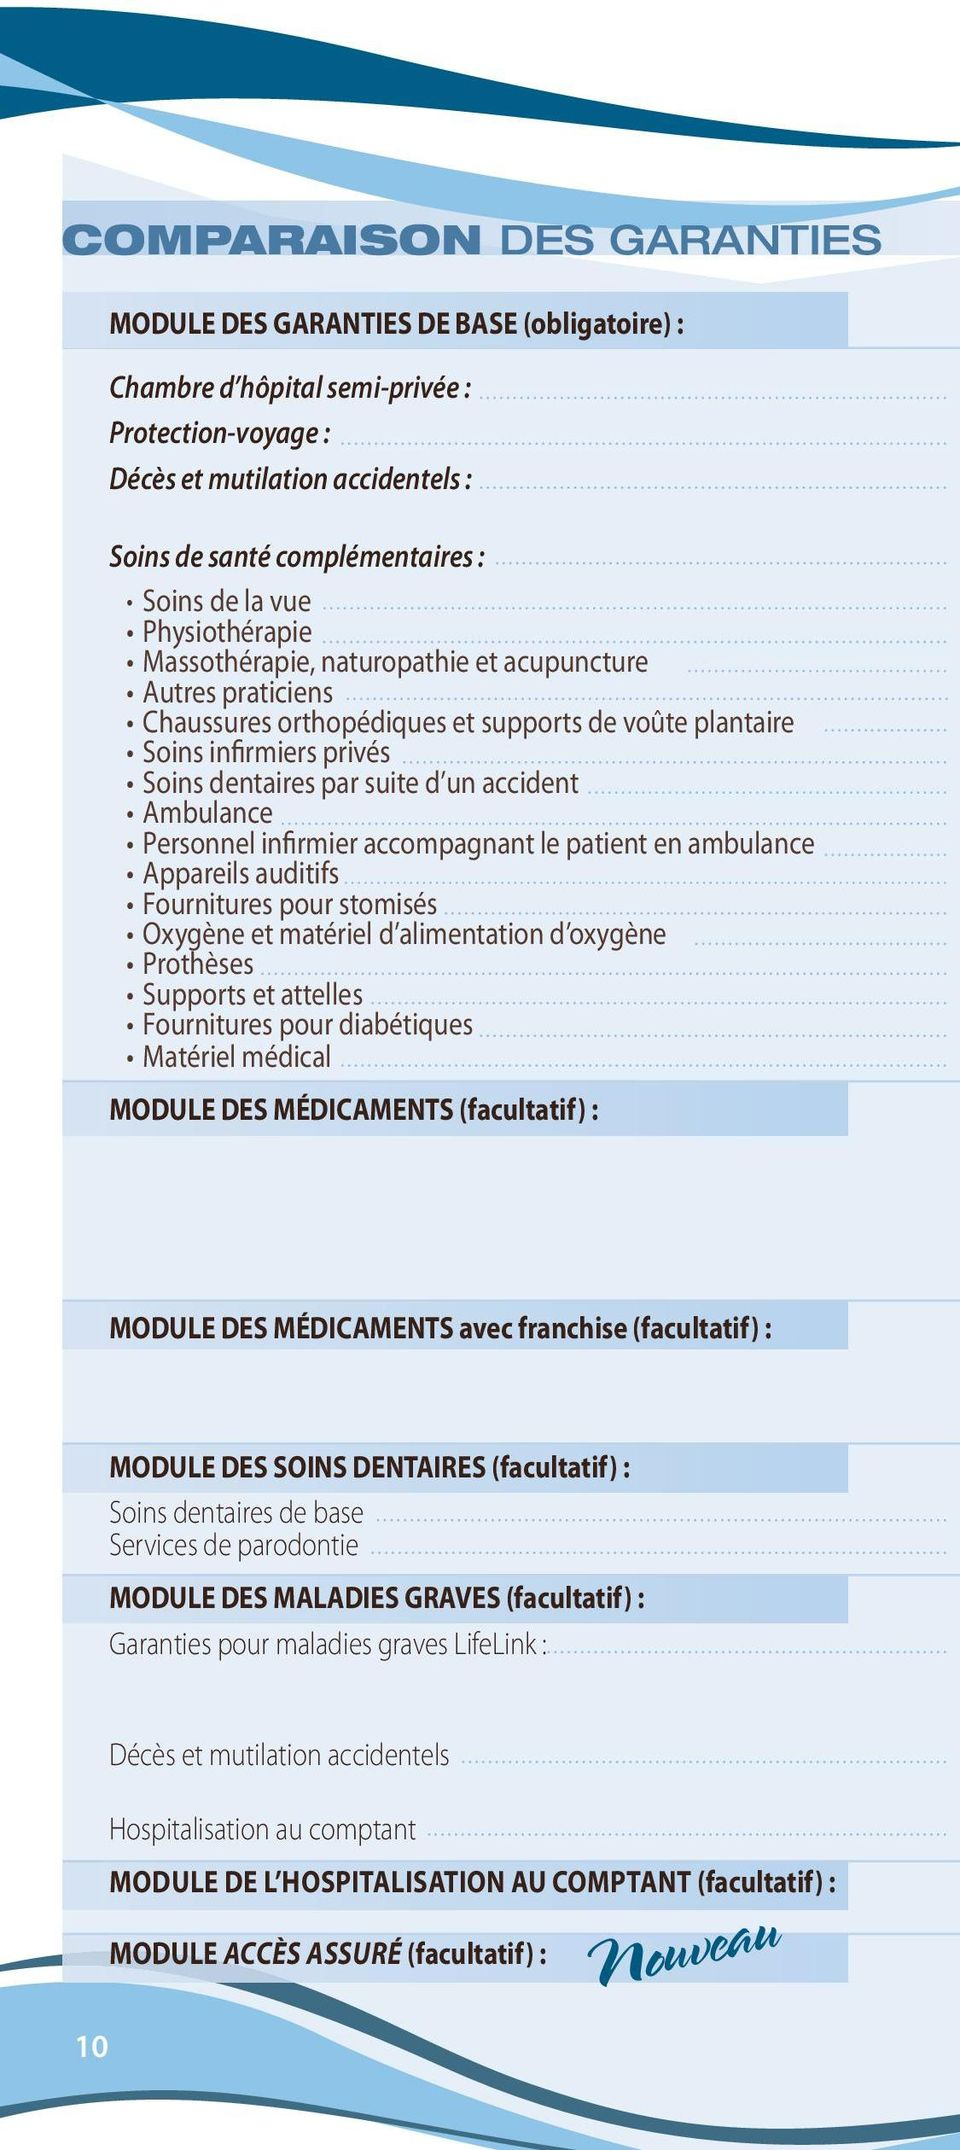 accident ambulance Personnel infirmier accompagnant le patient en ambulance appareils auditifs Fournitures pour stomisés Oxygène et matériel d alimentation d oxygène Prothèses Supports et attelles